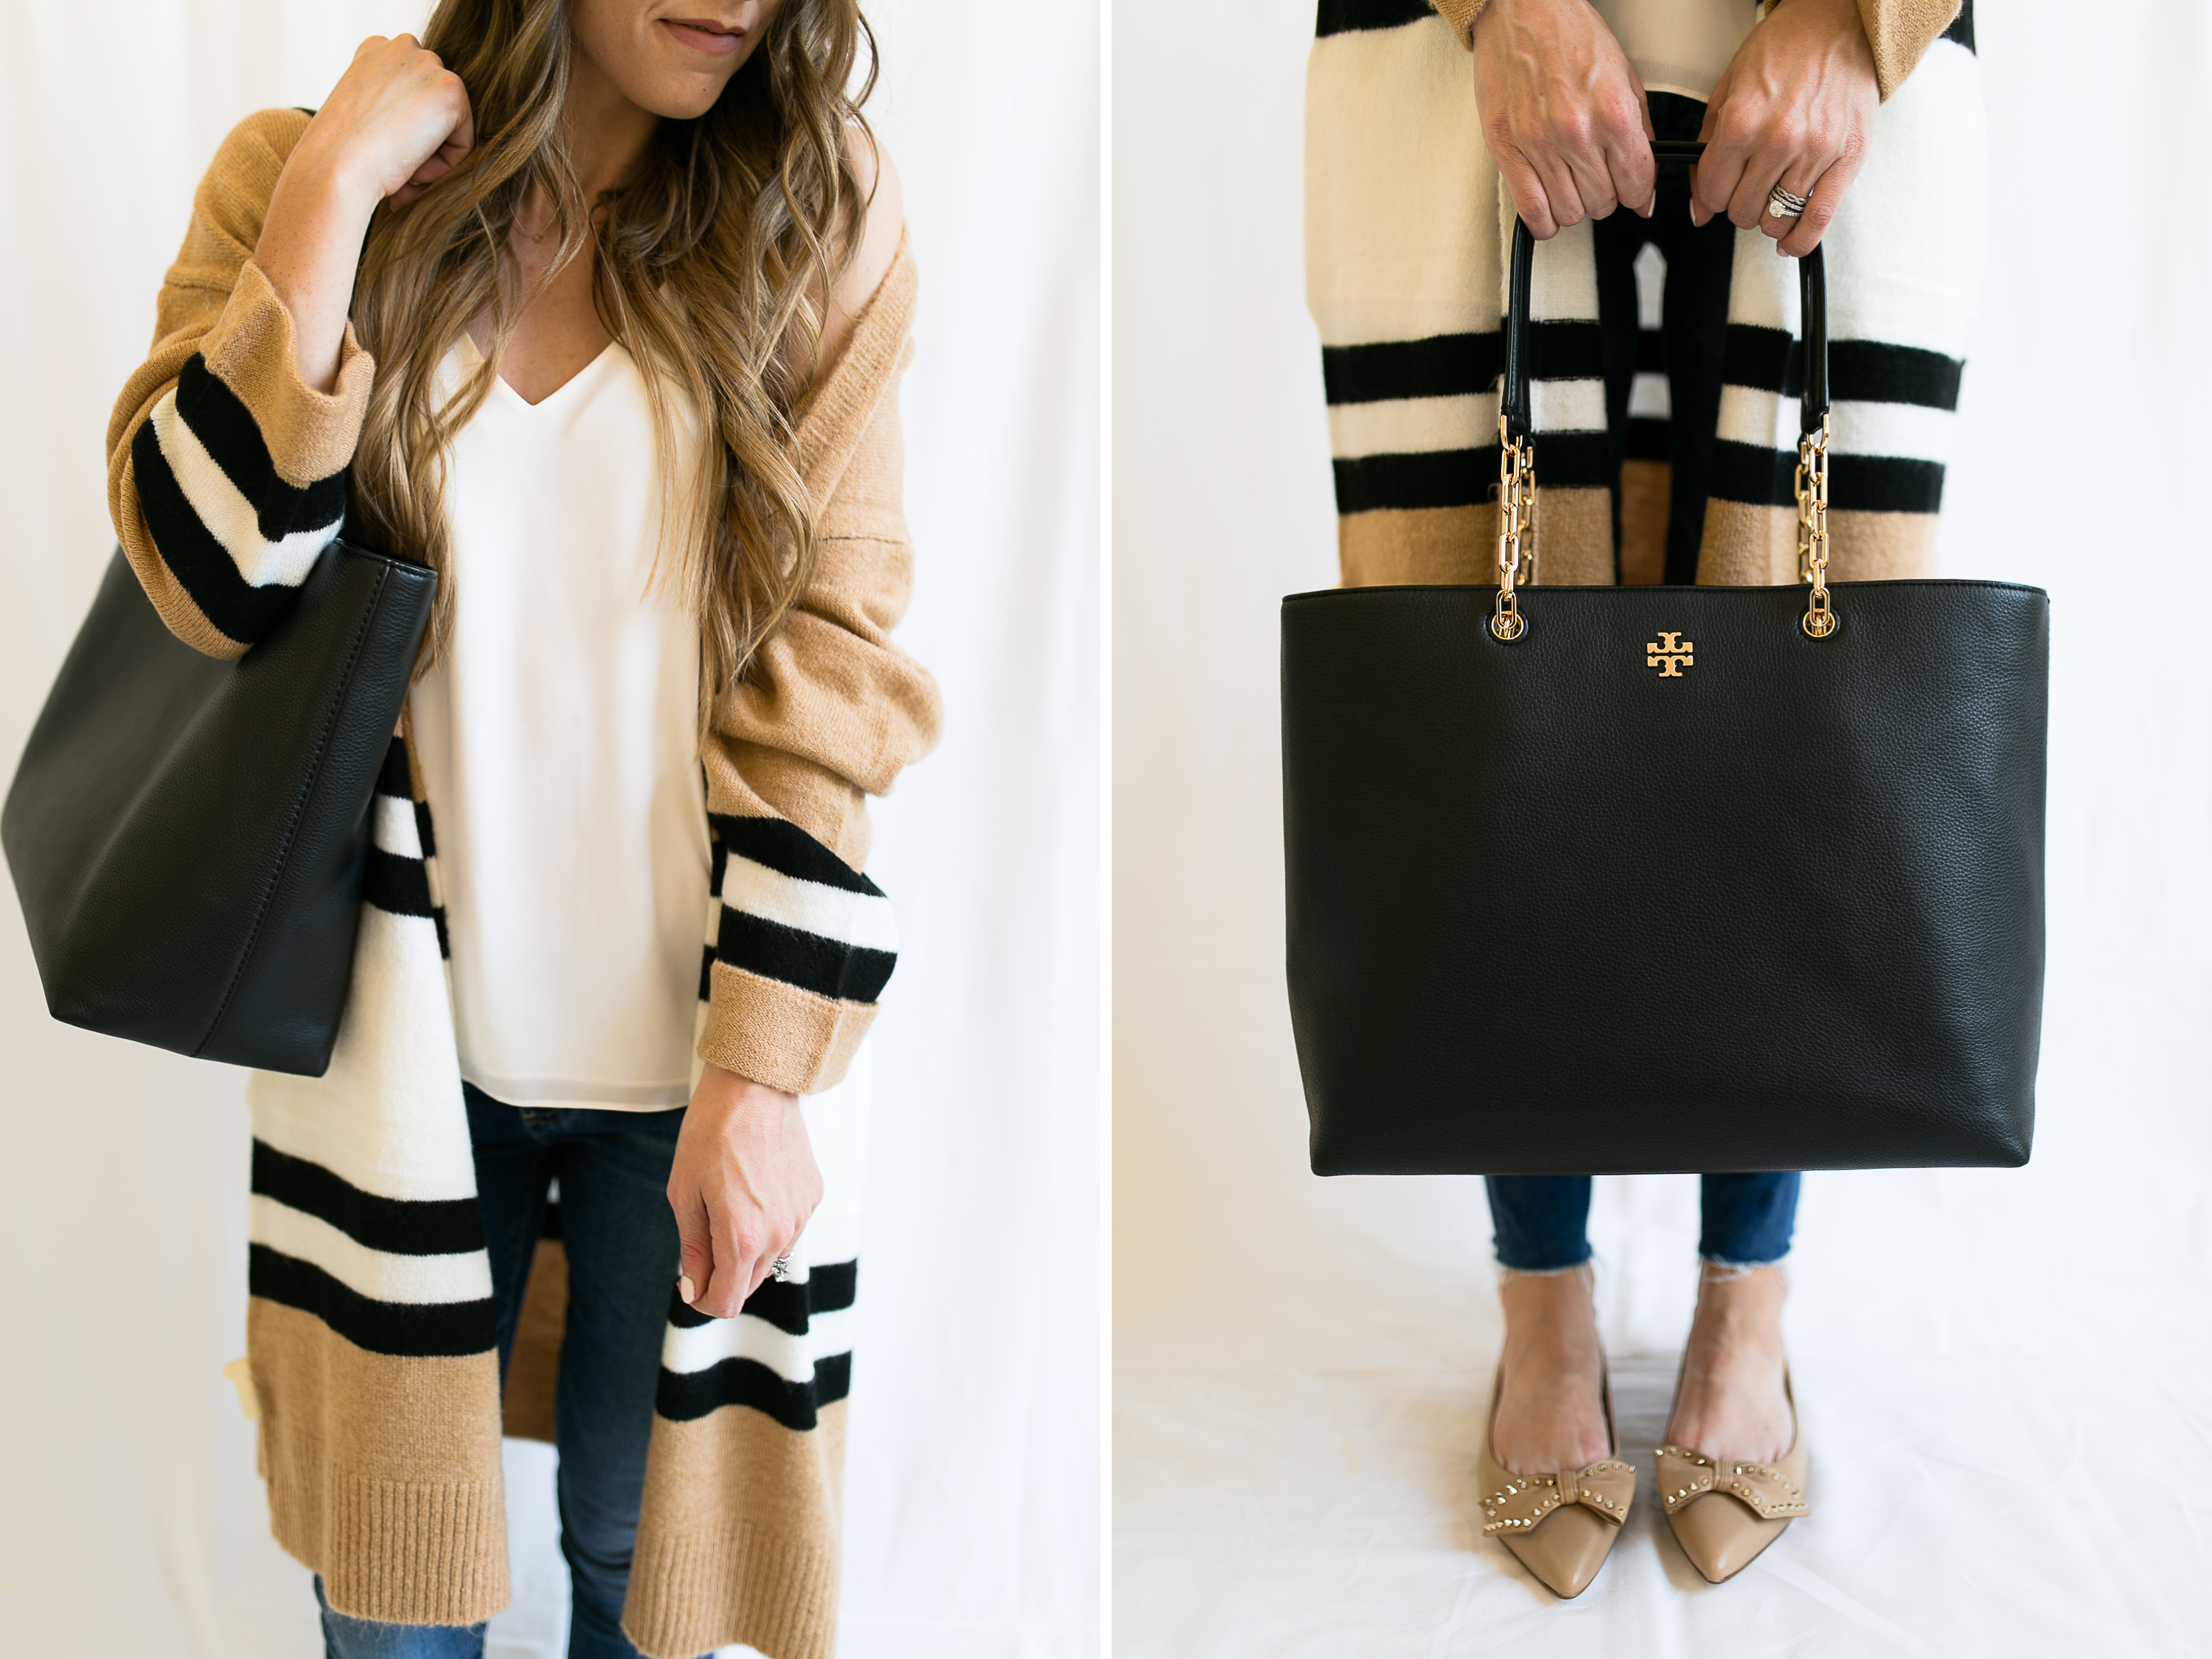 One of the best handbags of the Nordstrom Anniversary Sale 2017 is the Tory Burch Frida Pebbled Leather Tote and it pairs so well with these nude Sam Edelman Raisa Bow Flats